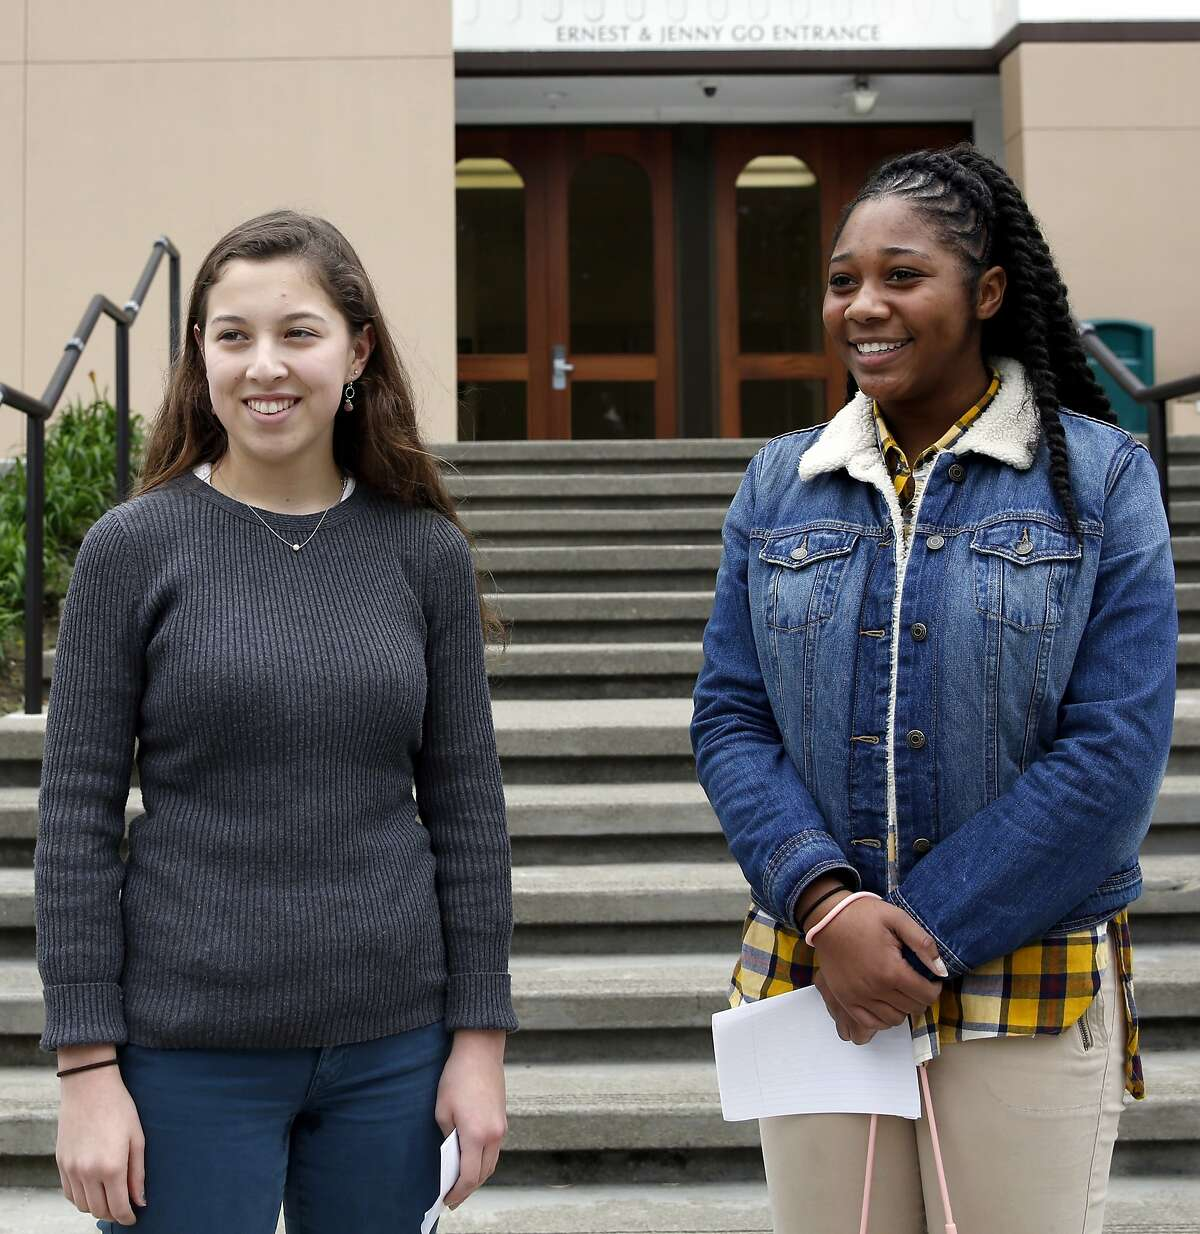 Lizzie Ford (left), student body president, and Nahrie Pierce, president of the black student union, stand outside St. Ignatius College Preparatory High School in San Francisco, California, on Thursday, Jan. 28, 2016.